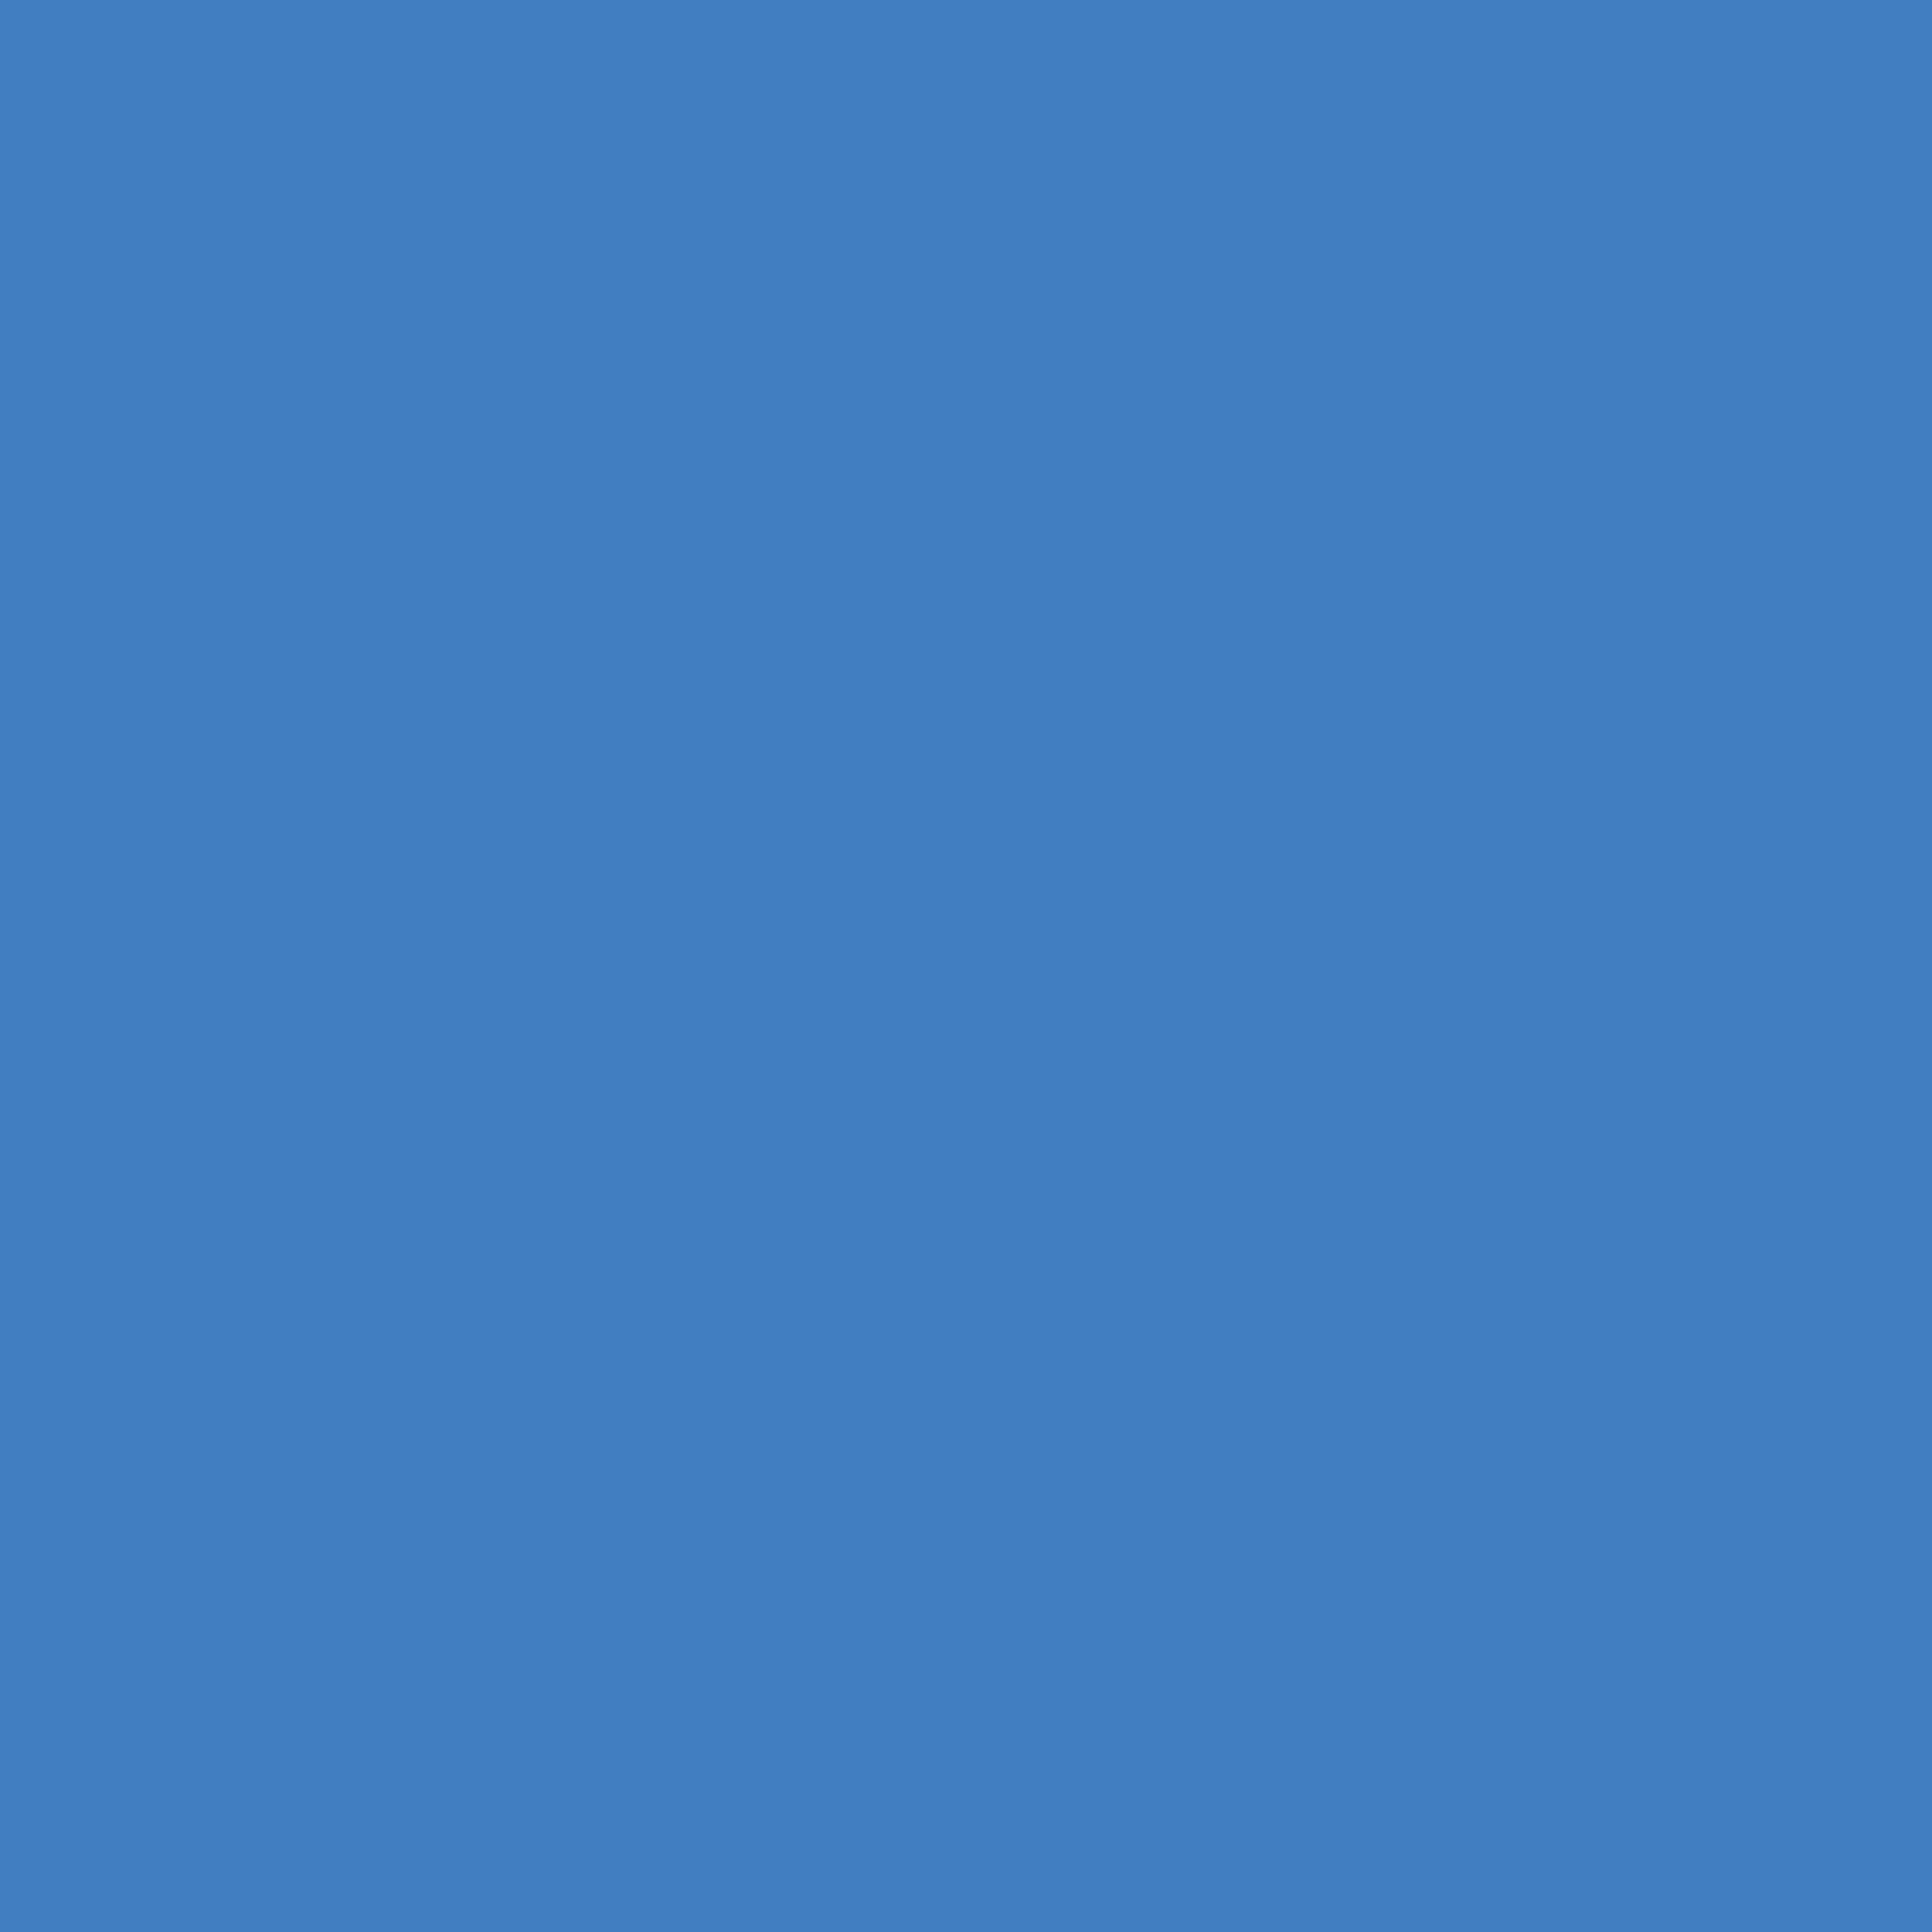 2732x2732 Tufts Blue Solid Color Background